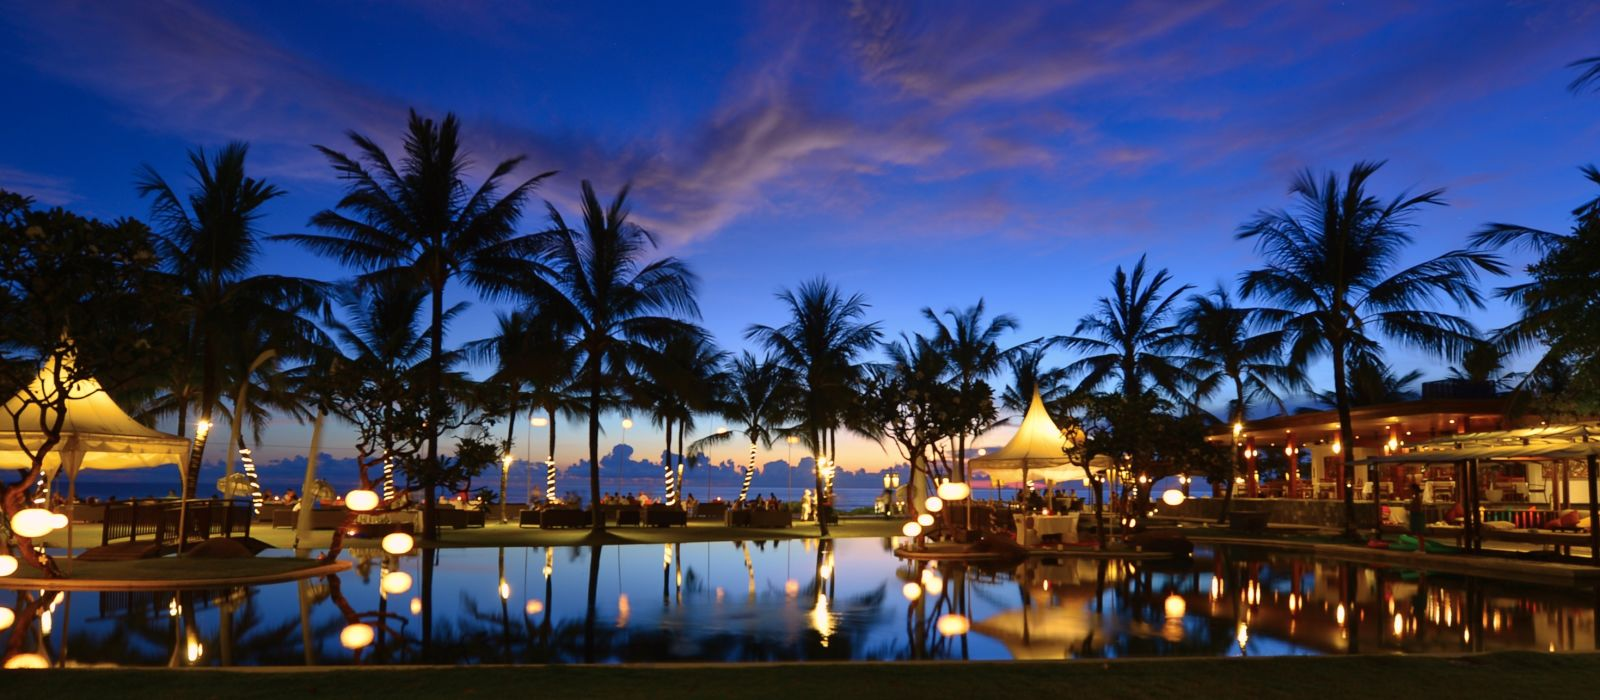 Luxurious Islands of Indonesia Tour Trip 7